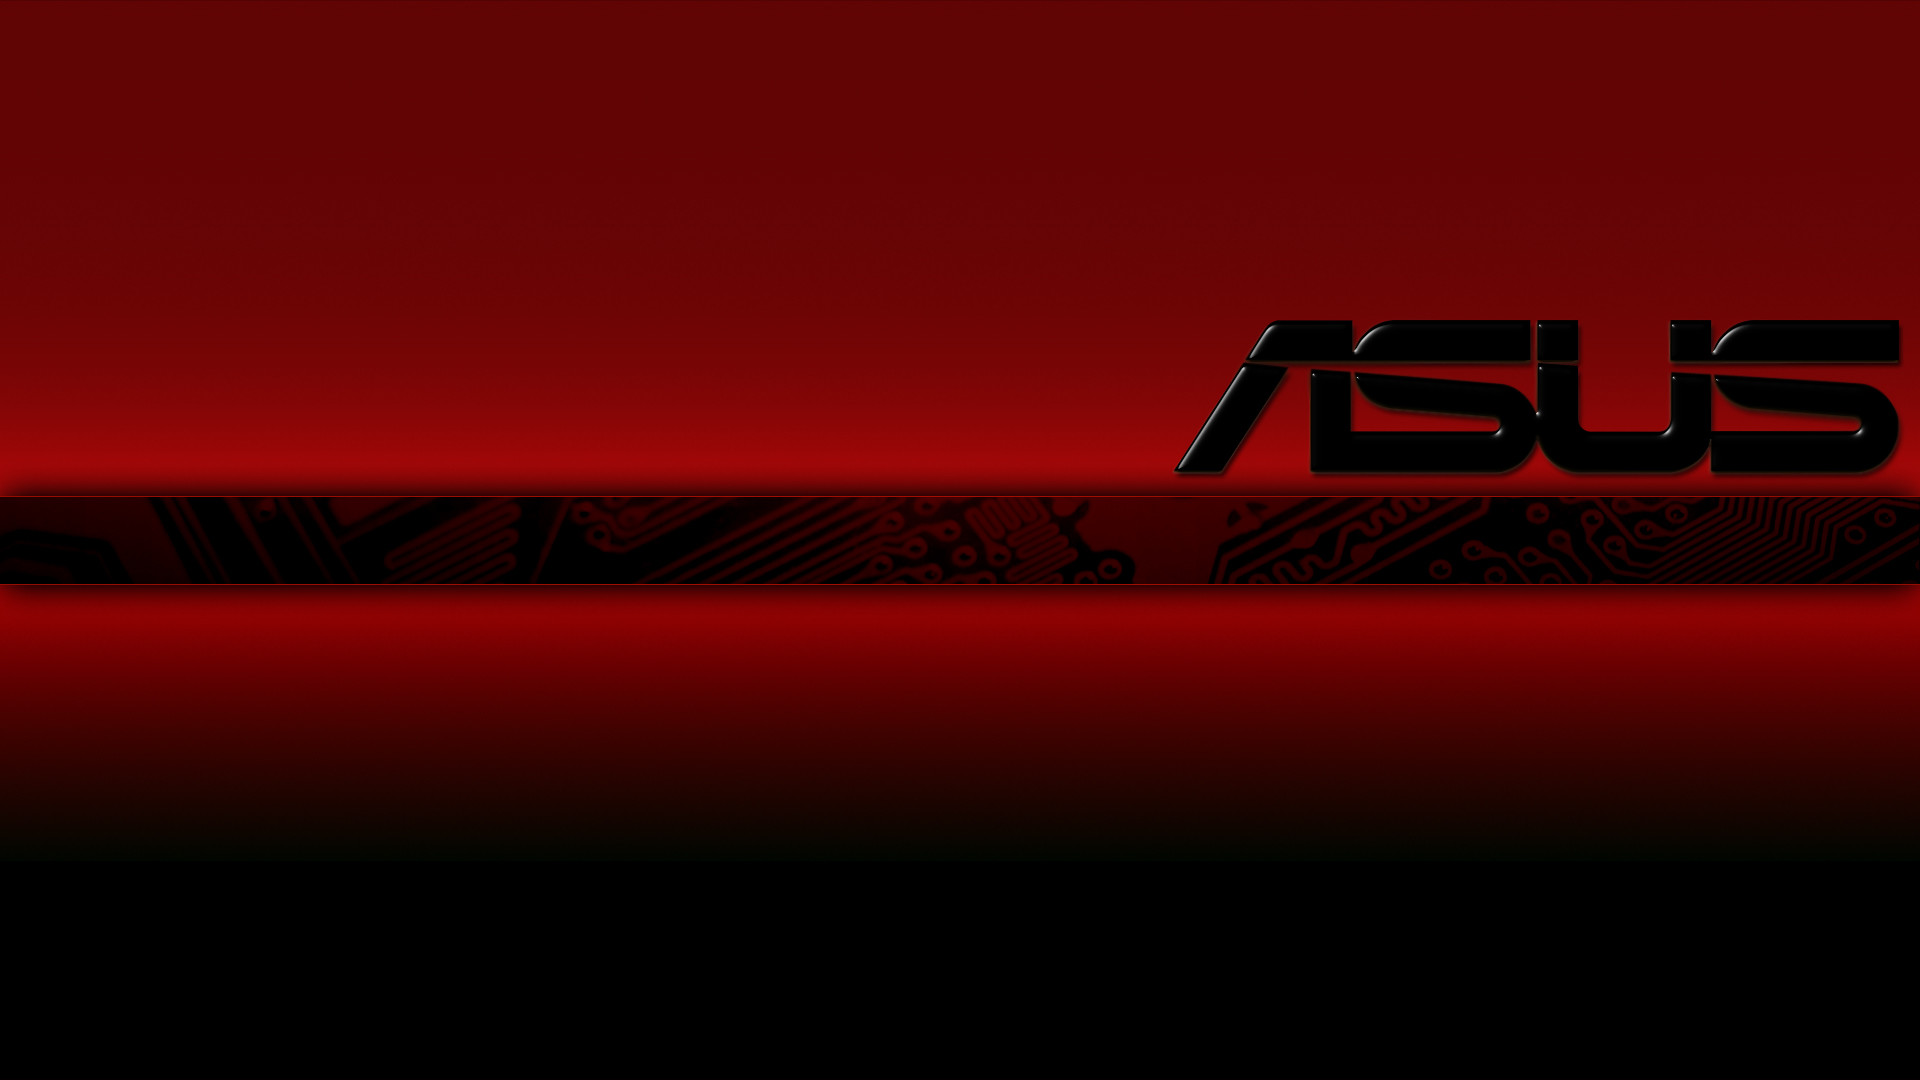 Black And Red Wallpaper 1920x1080 75 Images